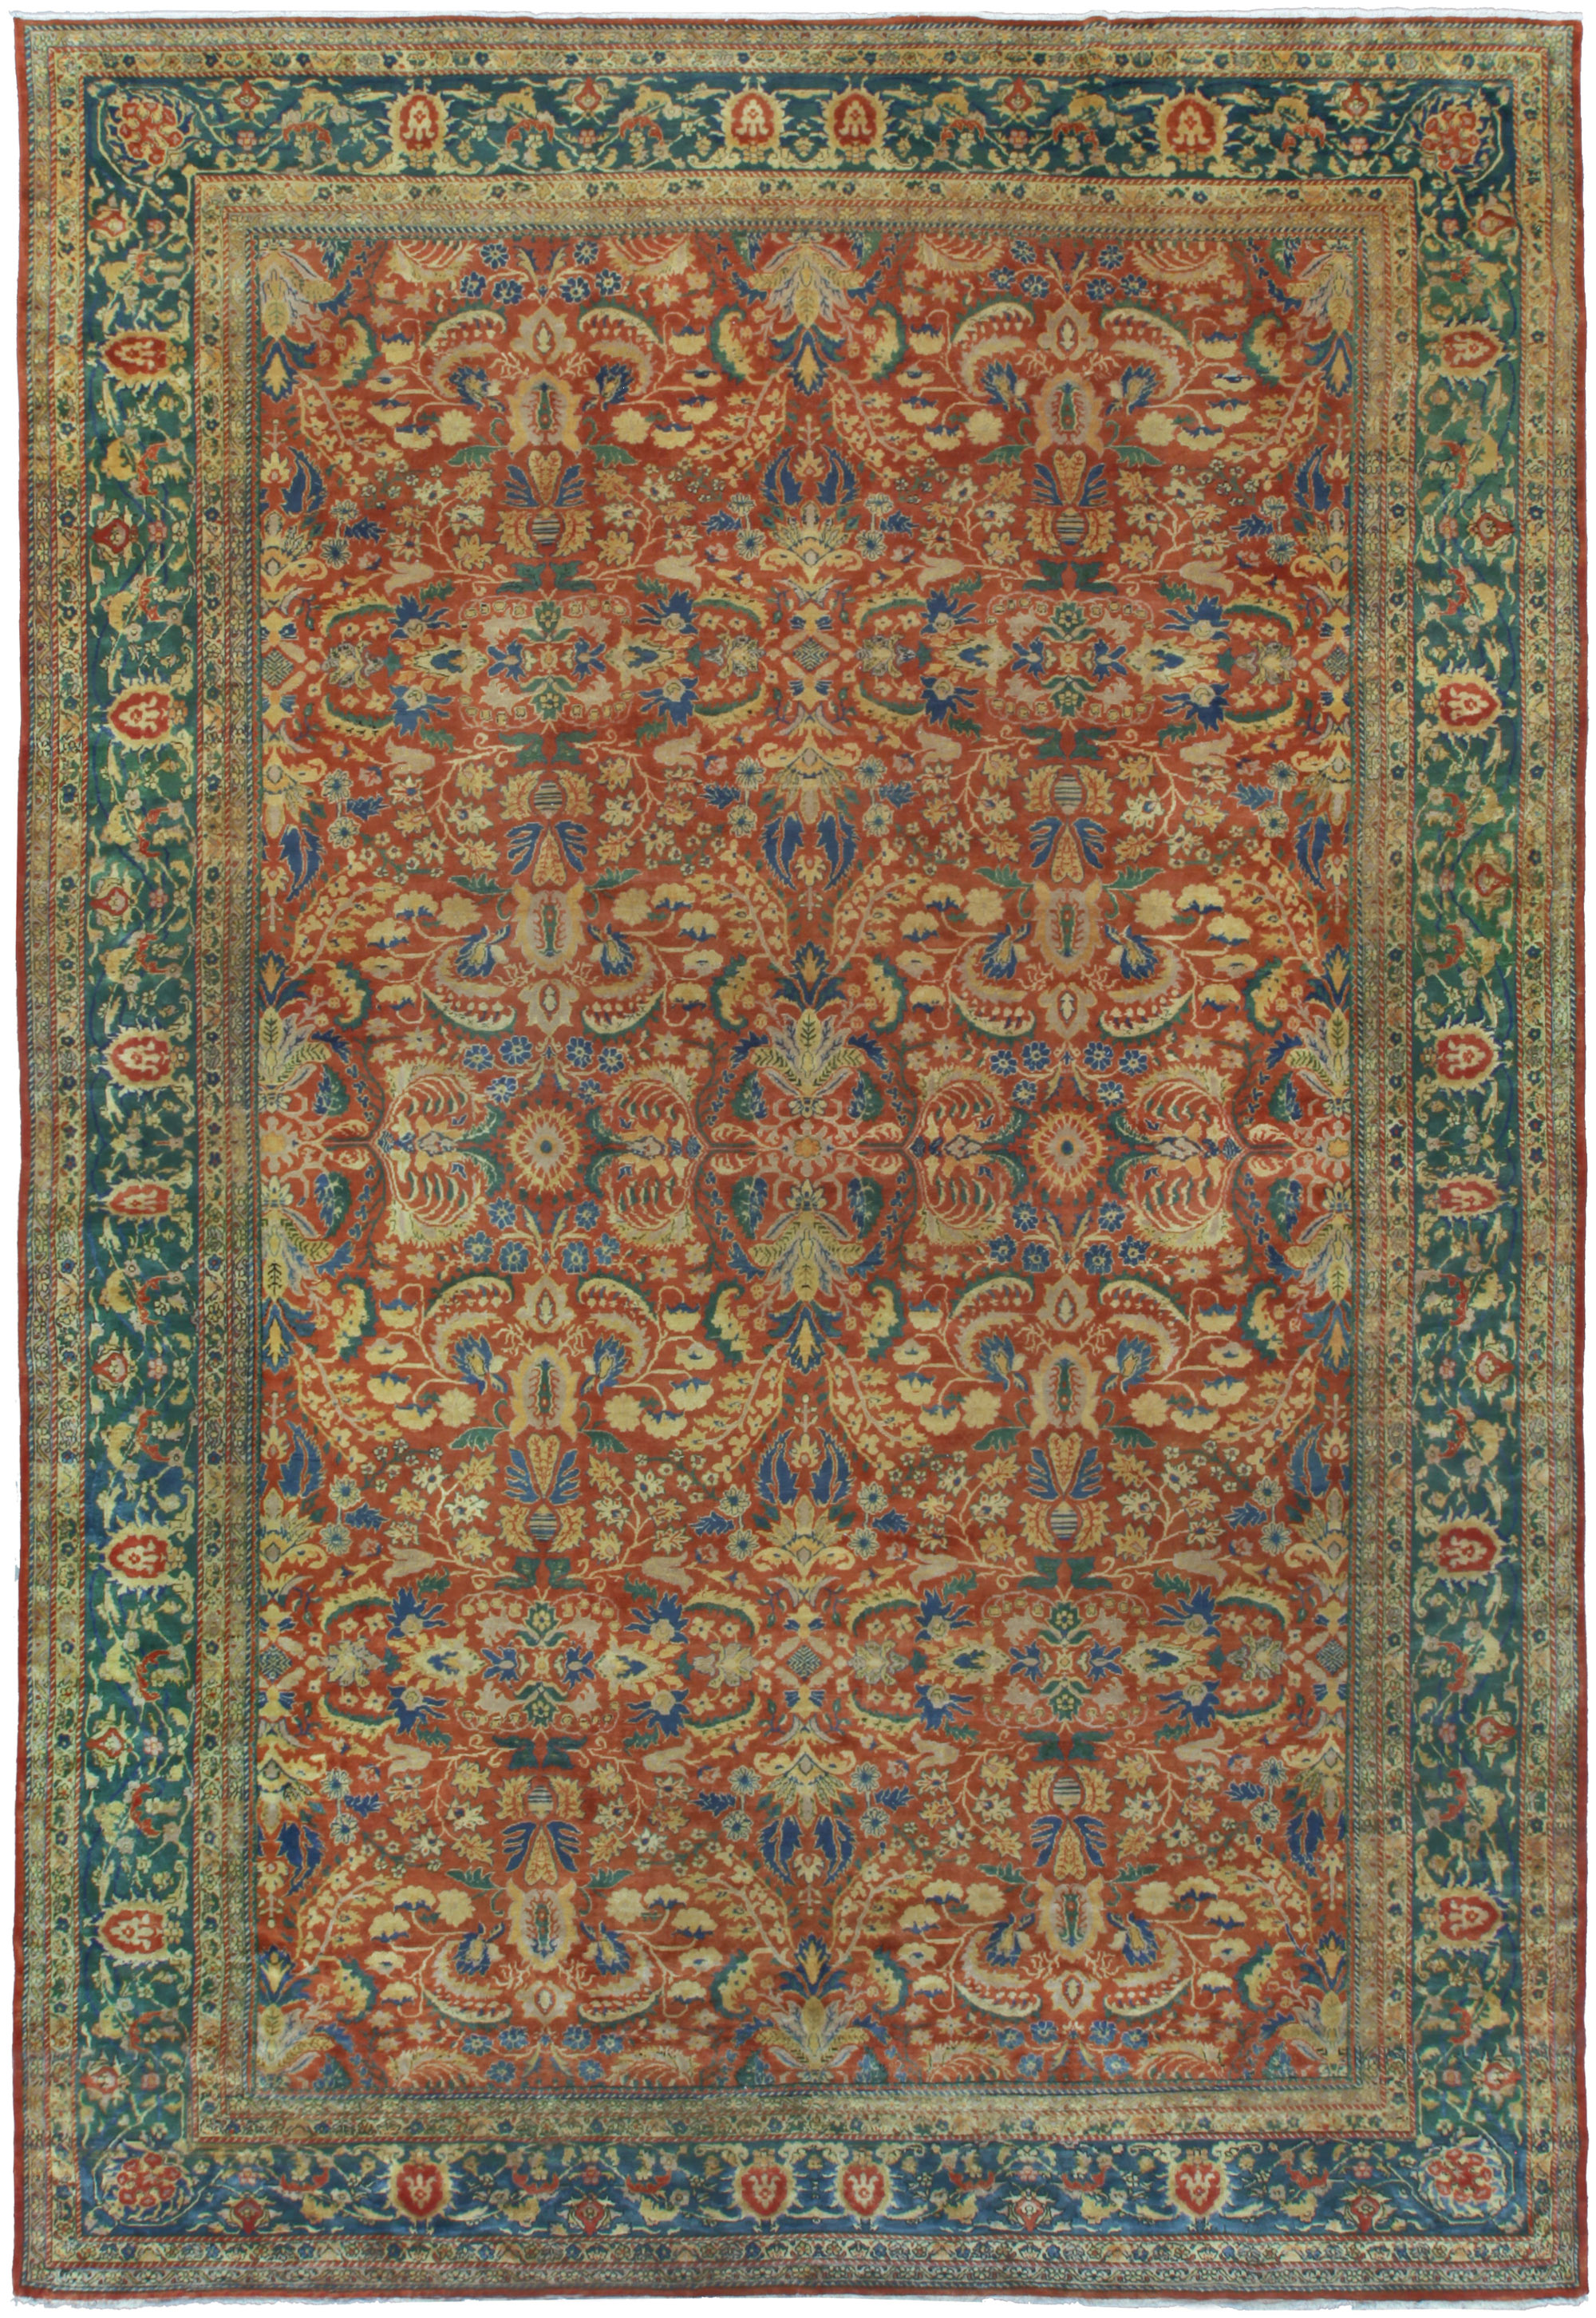 Antique Indian Rug BB5282